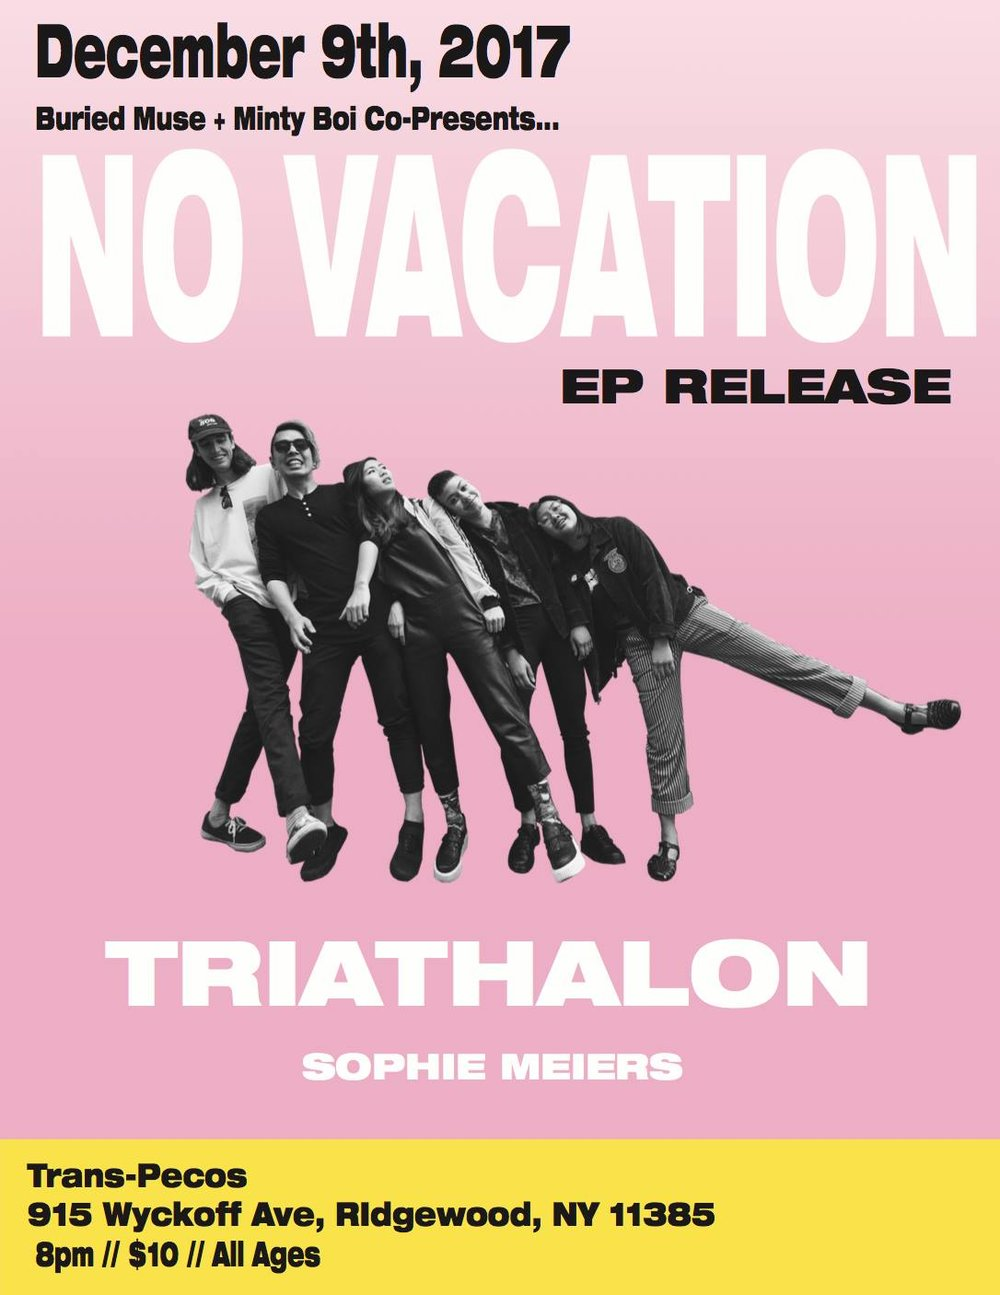 "No Vacation Ep Release, Triathlon, Sophie Meiers ♥  >>>>>>>>>>>>>>>>>>>>>>>>>>>>>>>>>>>>>>>>>>>>>>>  No Vacation  No Vacation began in early 2015, and quickly received attention for the nostalgic bedroom-pop sounds off of their debut mixtape, Amo XO, and surf-rock single, ""Draem Girl"". A few months following the release of their second mixtape, Summer Break, No Vacation went on an indefinite hiatus. The five-piece officially reassembled in 2017 after playing shows under various names and a few line-up changes.   Since their reunion, No Vacation has released 2 singles, ""Mind Fields"" and ""Yam Yam"", off of their new EP Intermission, which is set to be release with Topshelf Records this November. As they transition out of San Francisco, No Vacation will bring the novice ""wavy-gravy dream-pop"" sounds of Intermission to Brooklyn.  Links:  www.novacationband.com    https://open.spotify.com/artist/32zeX1IoVKAGWMyy1isKUq   >>>>>>>>>>>>>>>>>>>>>>>>>>>>>>>>>>>>>>>>>>>>>>>  Triathalon  One of New York's very beautiful Triathalon ♥  Link:  https://www.facebook.com/pg/triathalon/about/?ref=page_internal   https://triathalon.bandcamp.com/   http://www.triathalon.band/   >>>>>>>>>>>>>>>>>>>>>>>>>>>>>>>>>>>>>>>>>>>>>>> Sophie Meiers Single/ song write from Denver  Link:  https://www.facebook.com/sophiezofie/   https://open.spotify.com/artist/4Qz5J3GBpmR1LcPgqFbzlW   https://soundcloud.com/sophie-meiers"